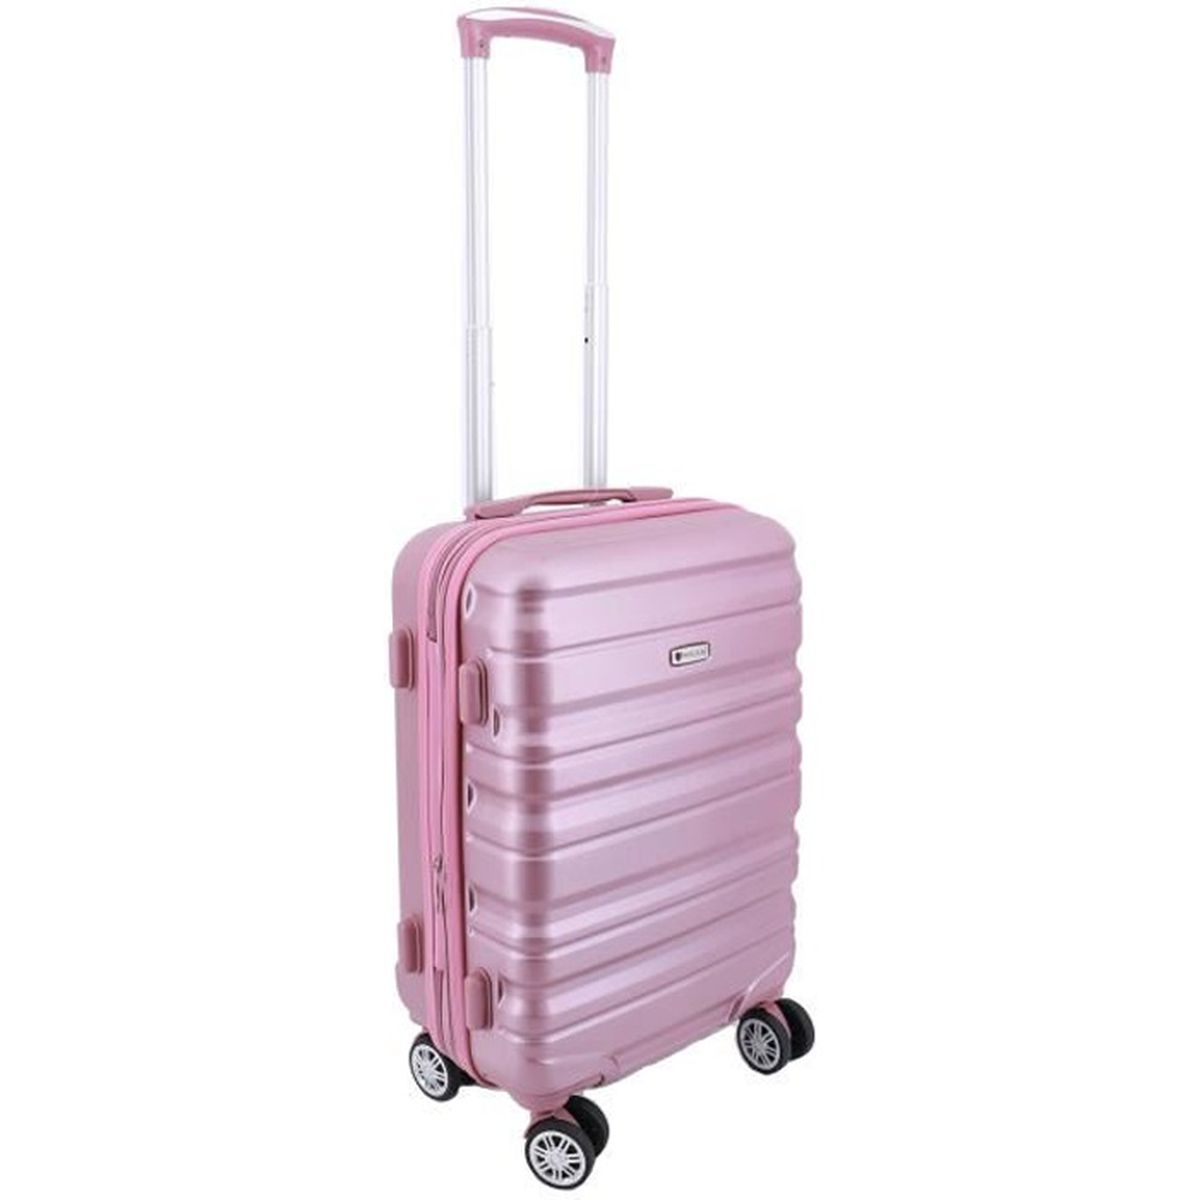 VALISE - BAGAGE Valise cabine Extensible 55 x 35 x 21(25) cm World